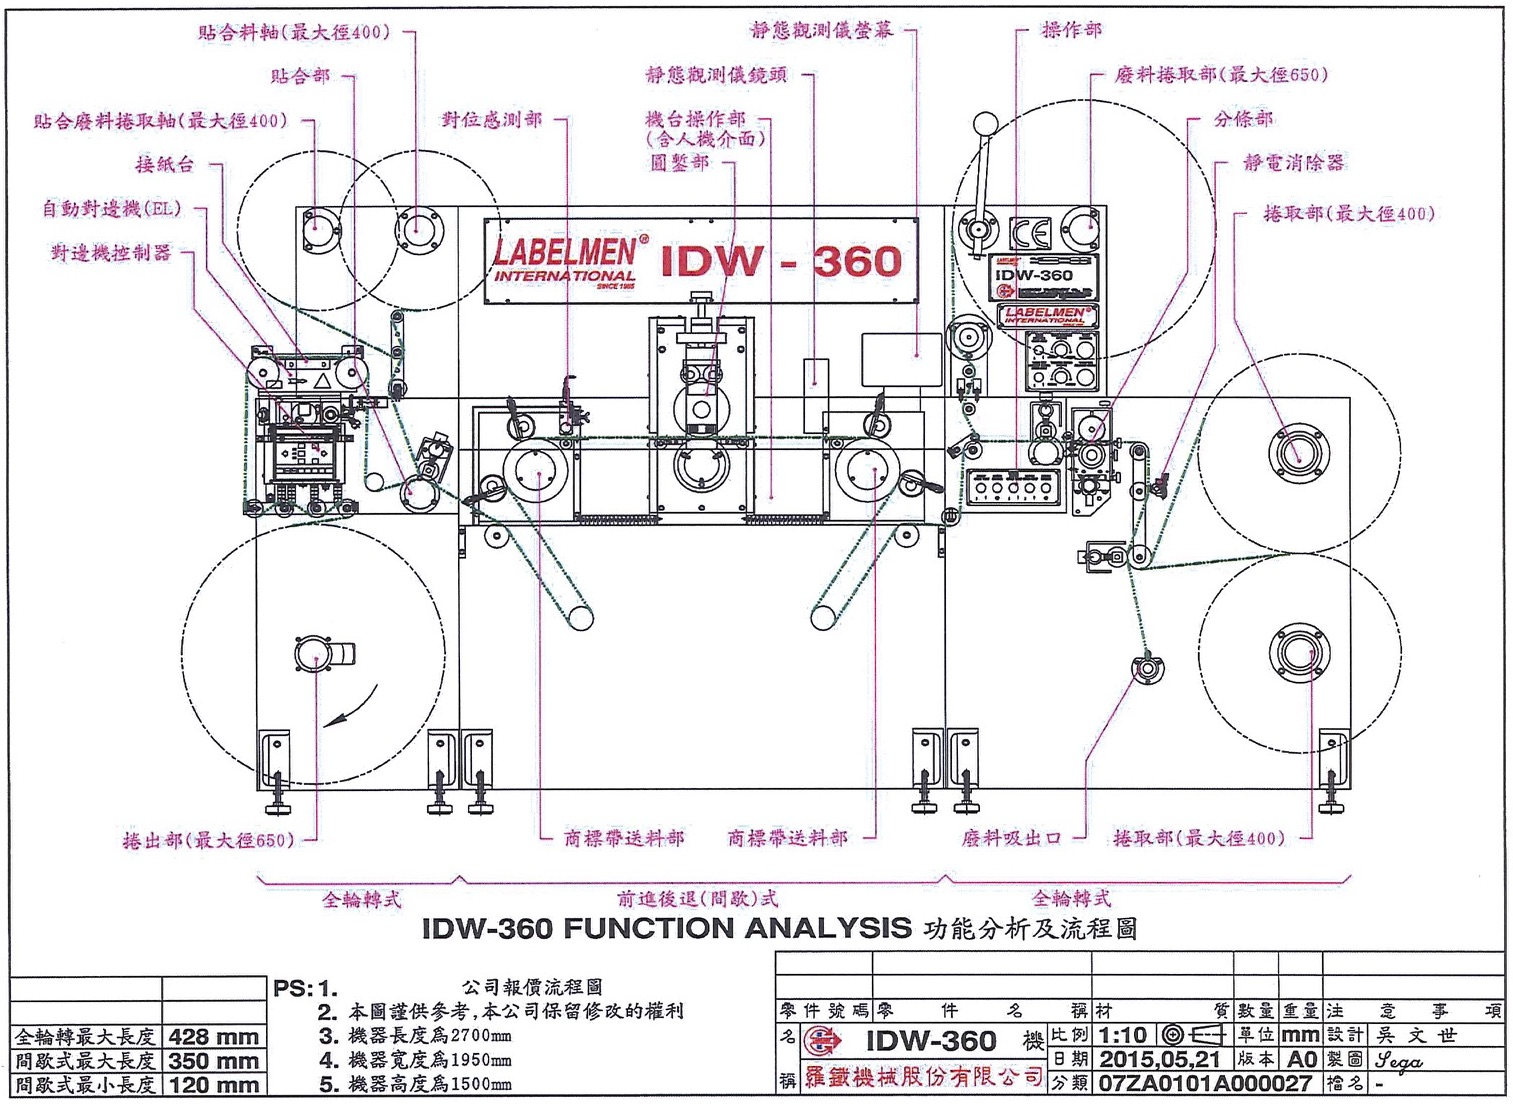 IDW-360-series:-HIGH-SPEED-FULL-ROTARY-INTERMITTANT-SEMI-ROTARY-DIE-CUTTING-MACHINE-1024x724.jpg